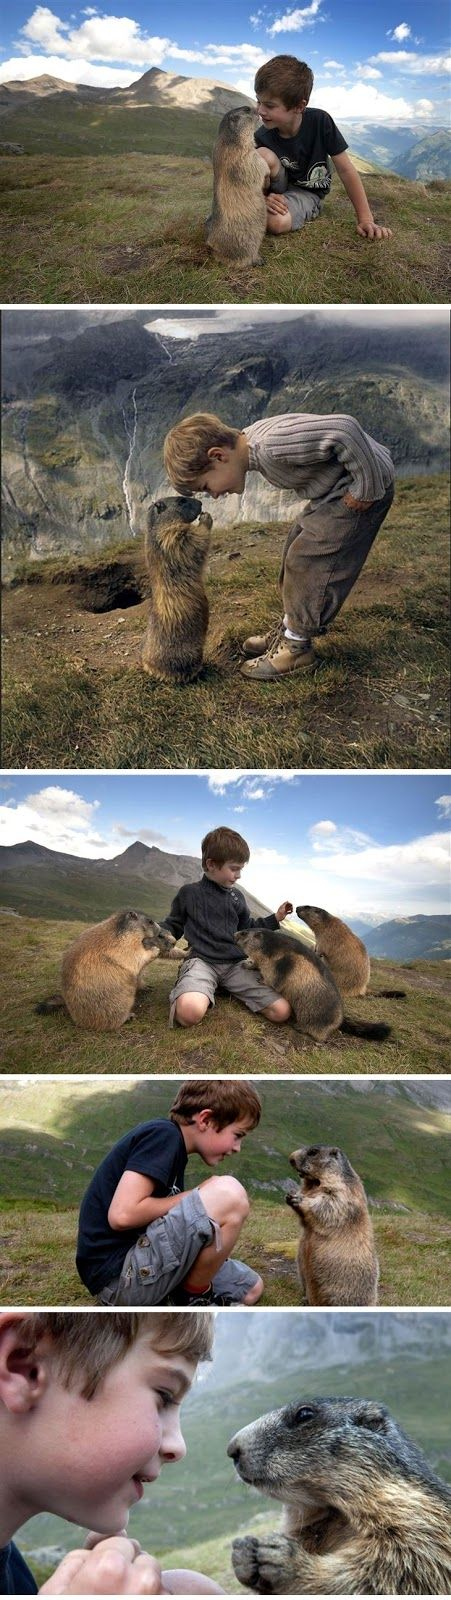 Amazing Friendship between Matteo Walch, a 13-year-old boy from Austria and a Marmot. Matteo Walch has struck up an unlikely friendship with a group of marmots in the Austrian Alps.